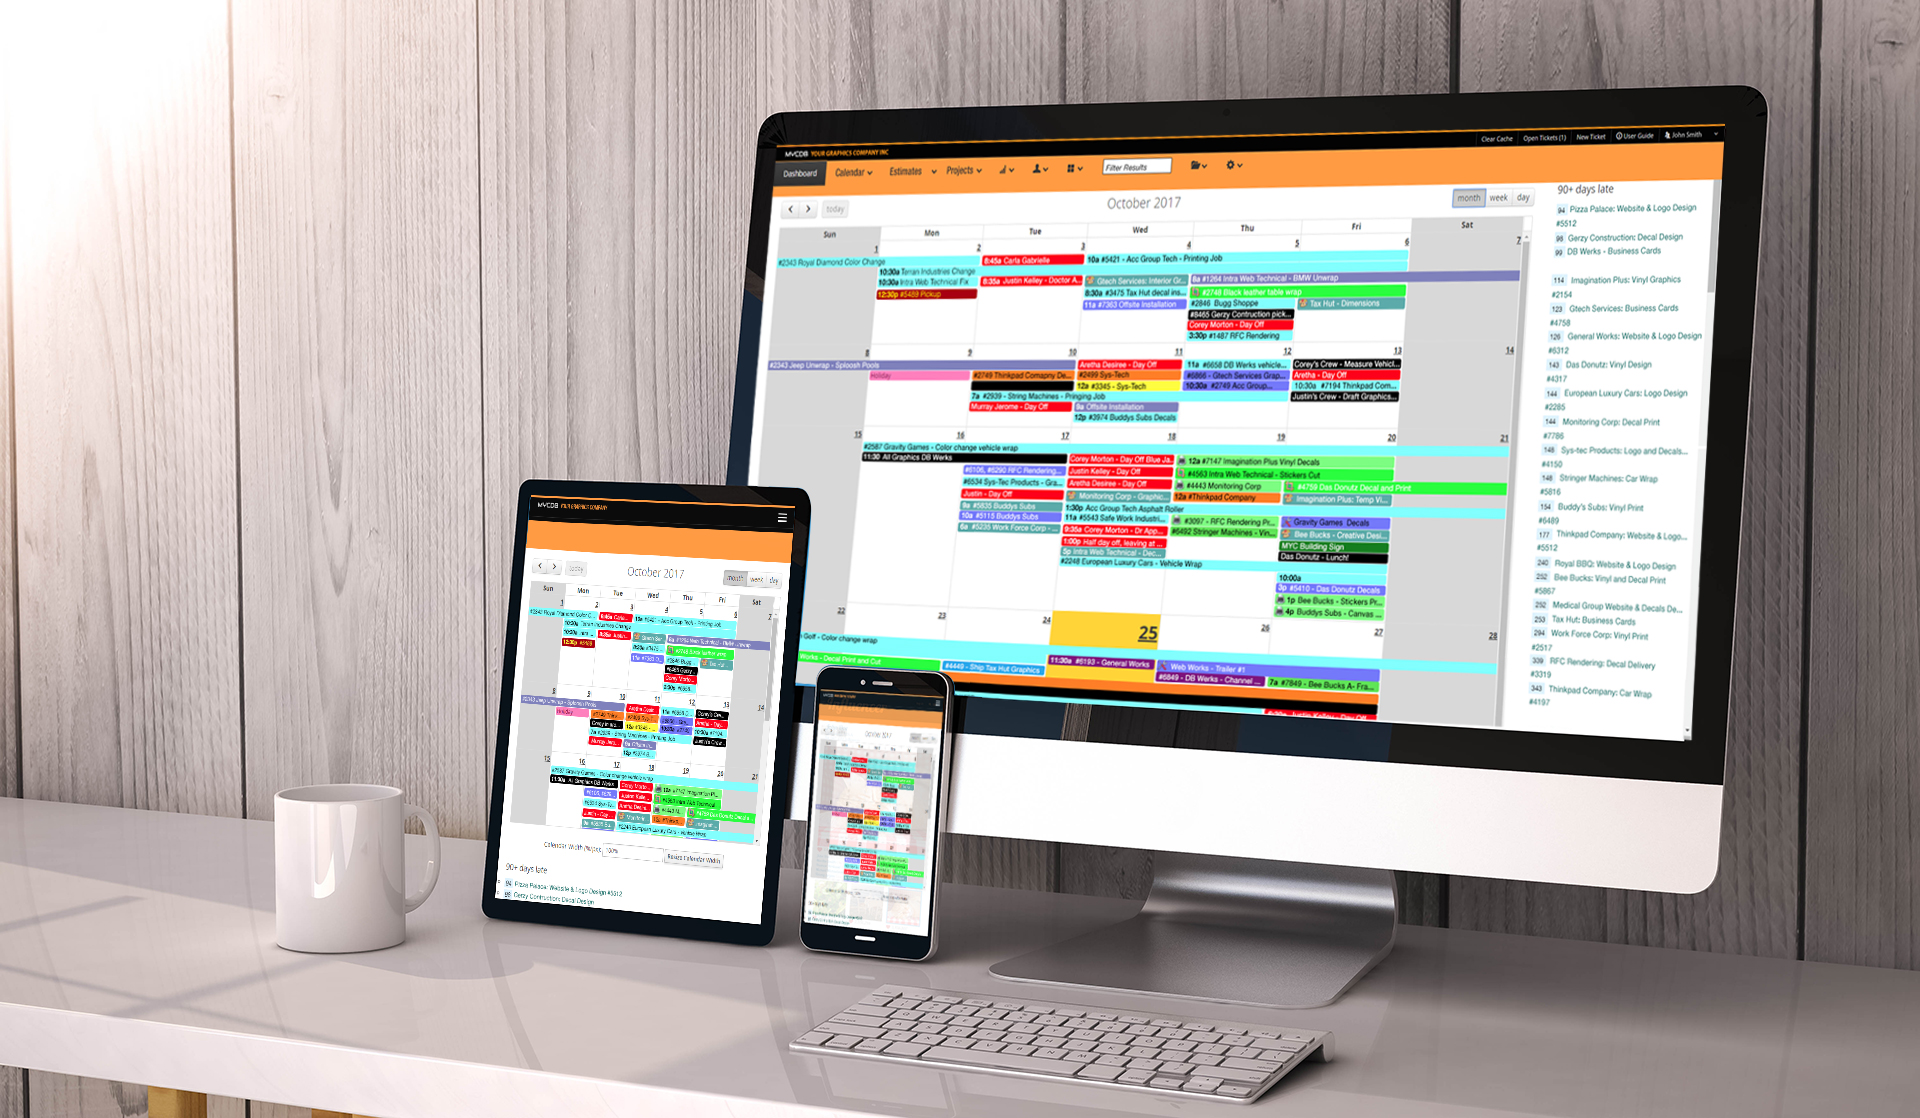 MYCDB Software - Calendar on Tablet, Mobile Phone and Desktop Computer